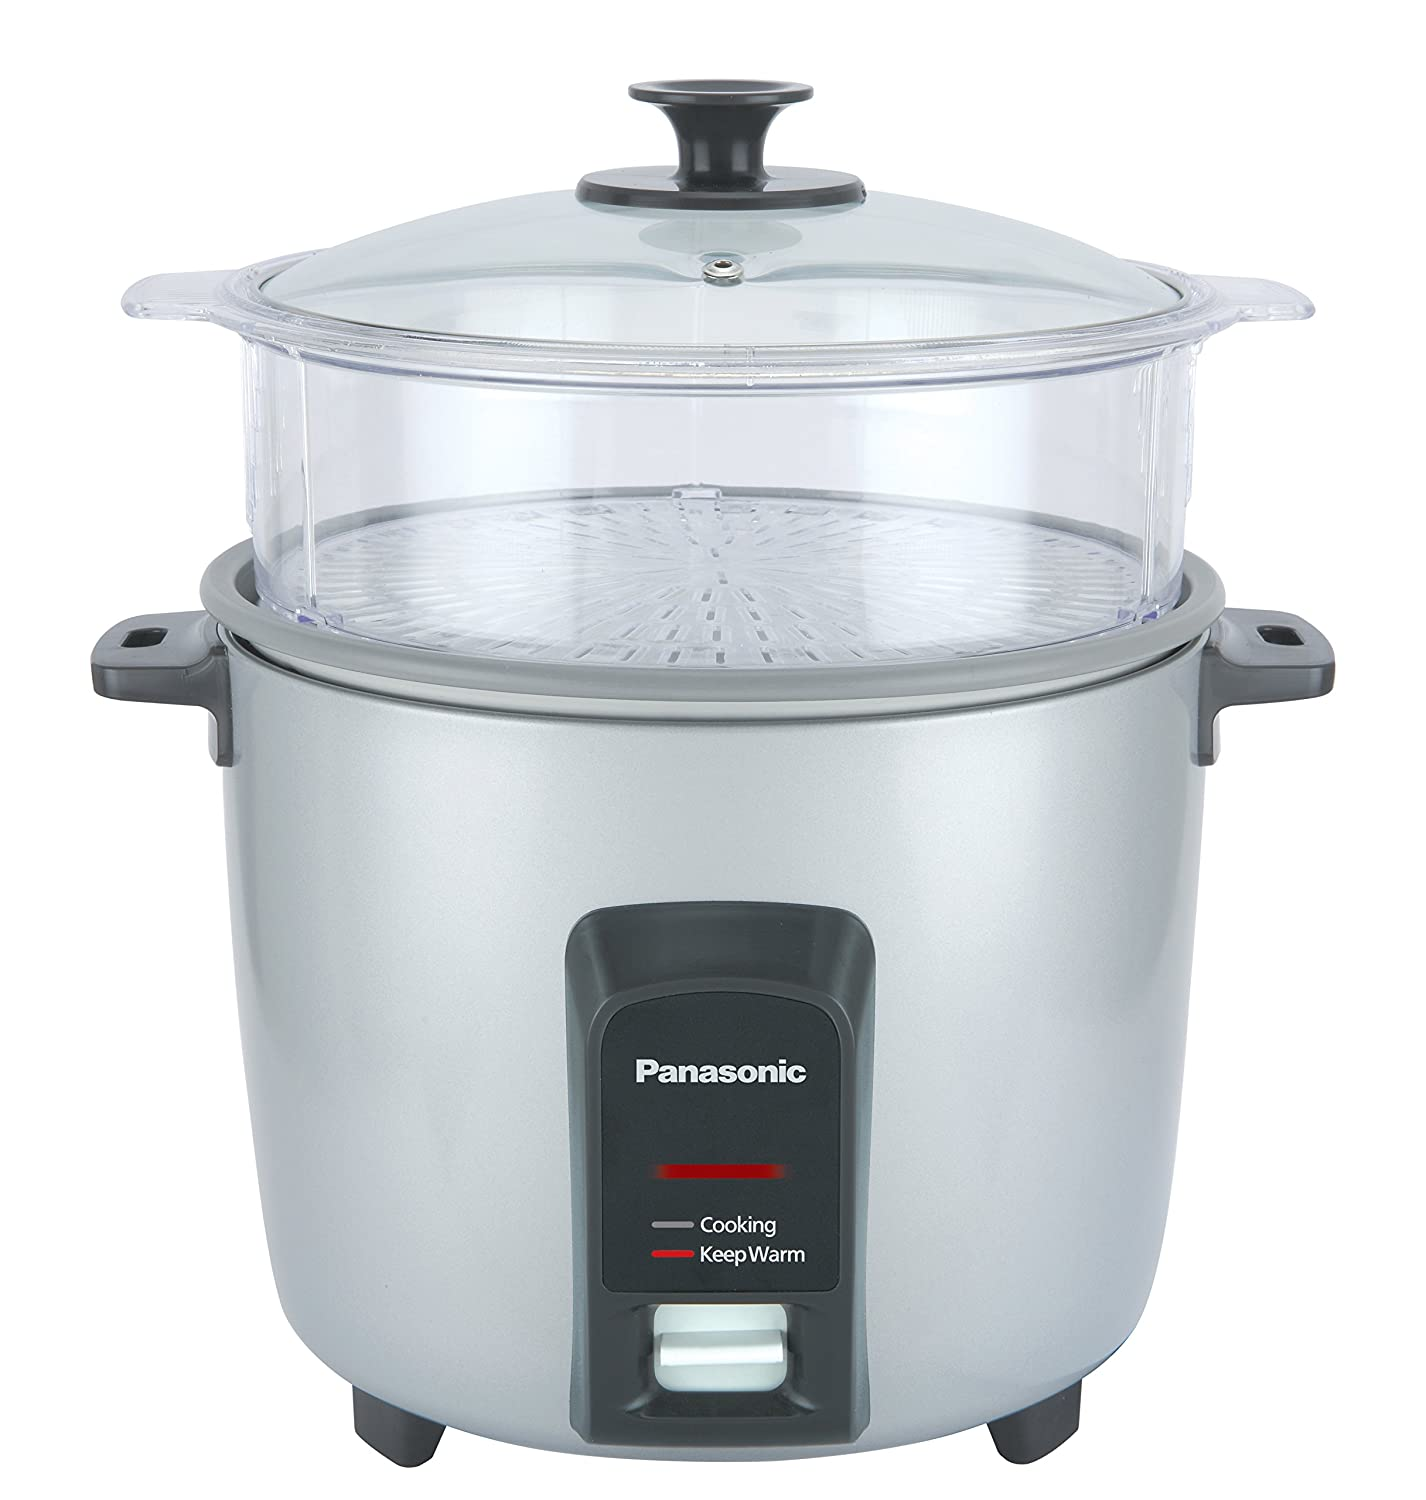 Panasonic 12 Cup (Uncooked) Automatic Rice Cooker/Steamer, Silver